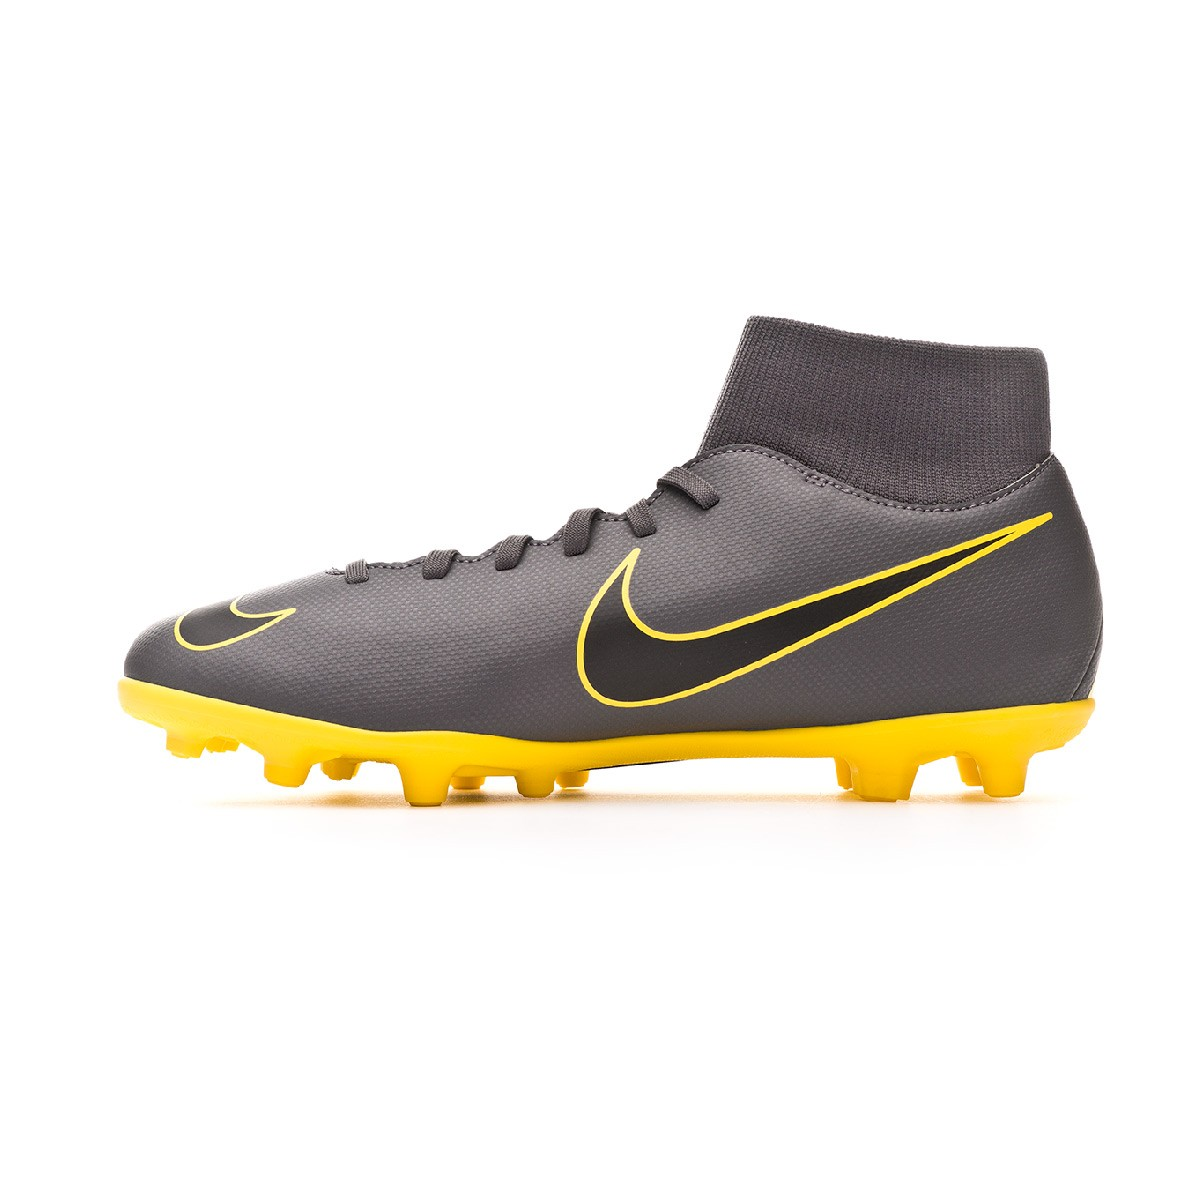 brand new 937b3 363a5 Bota Mercurial Superfly VI Club MG Dark grey-Black-Optical yellow